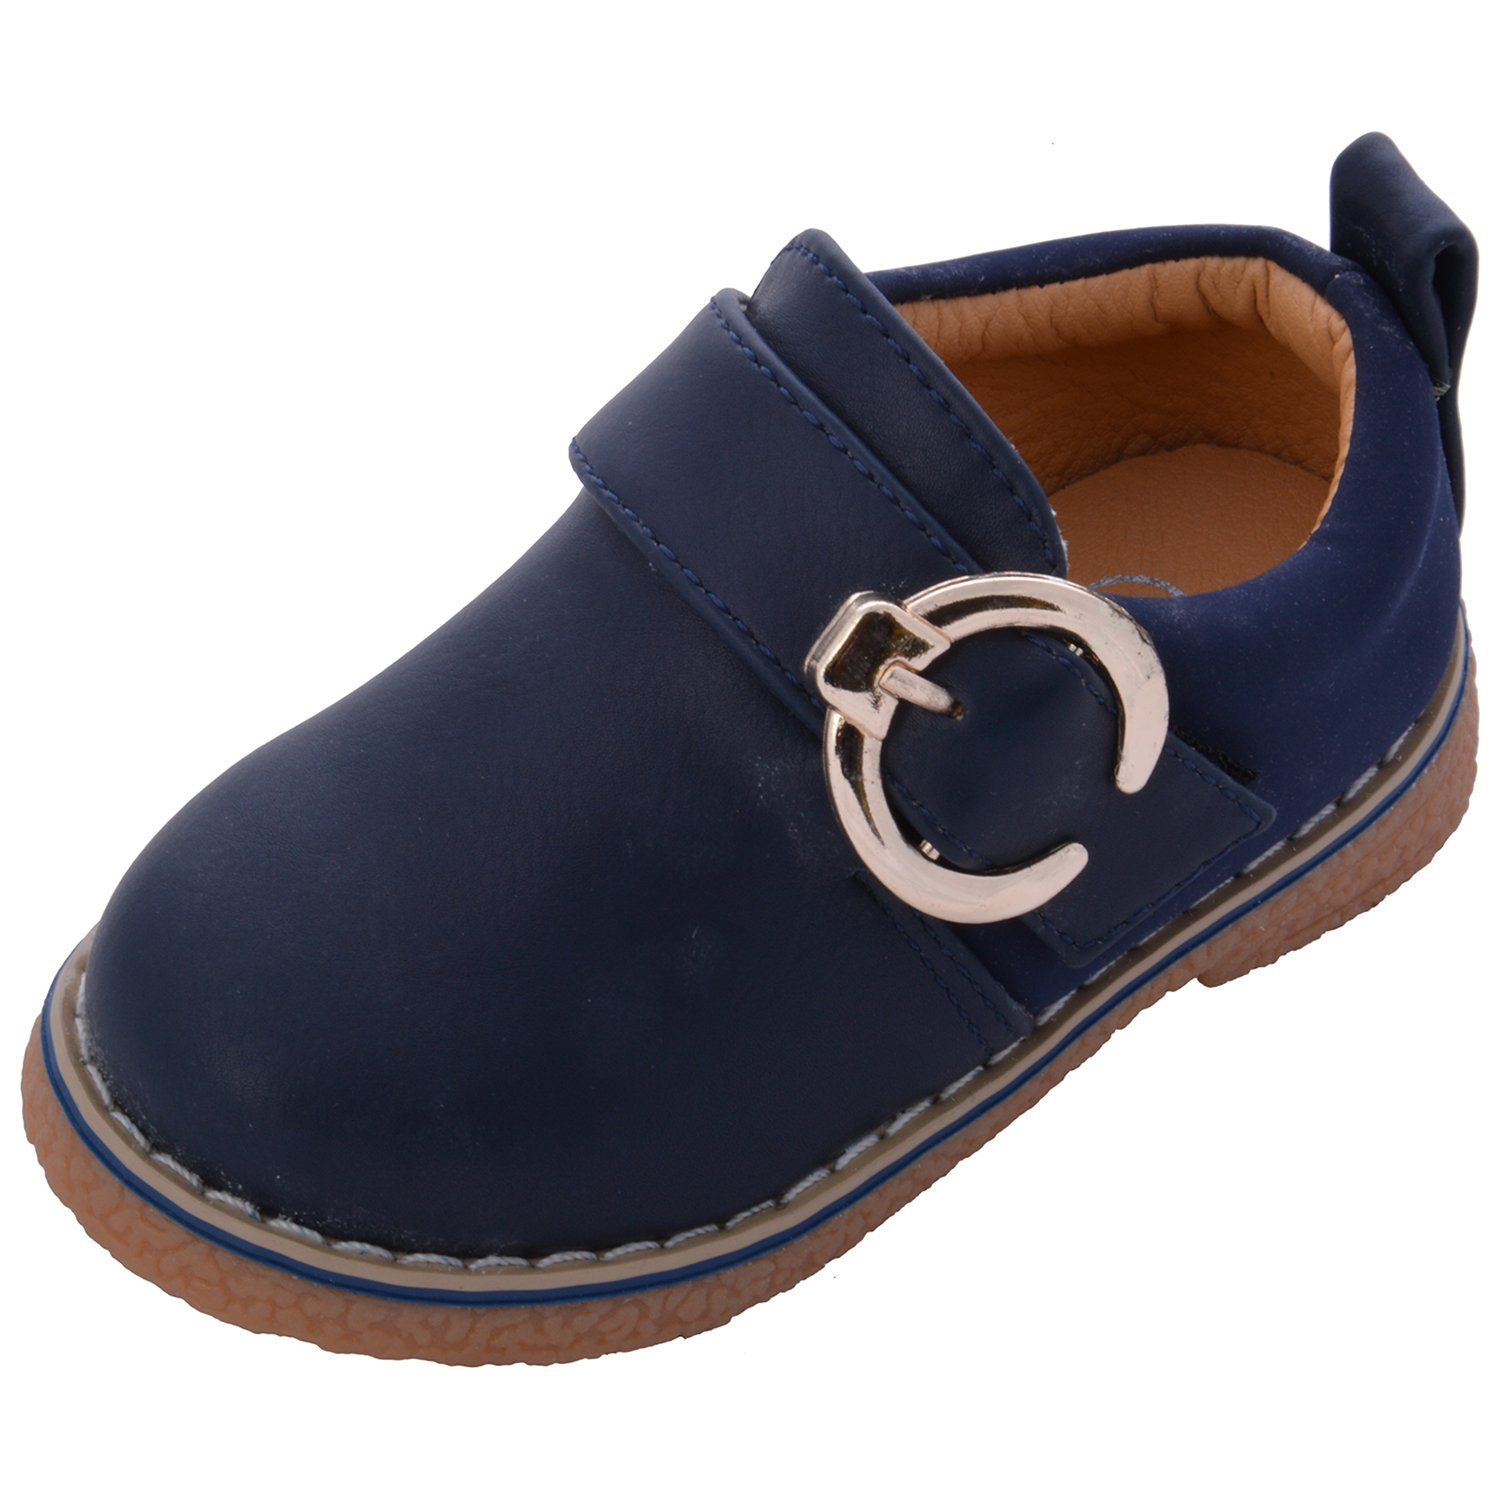 Doink Shoes Navy Leather Baby Boys Loafers UK Size 8 28 to 30 mths